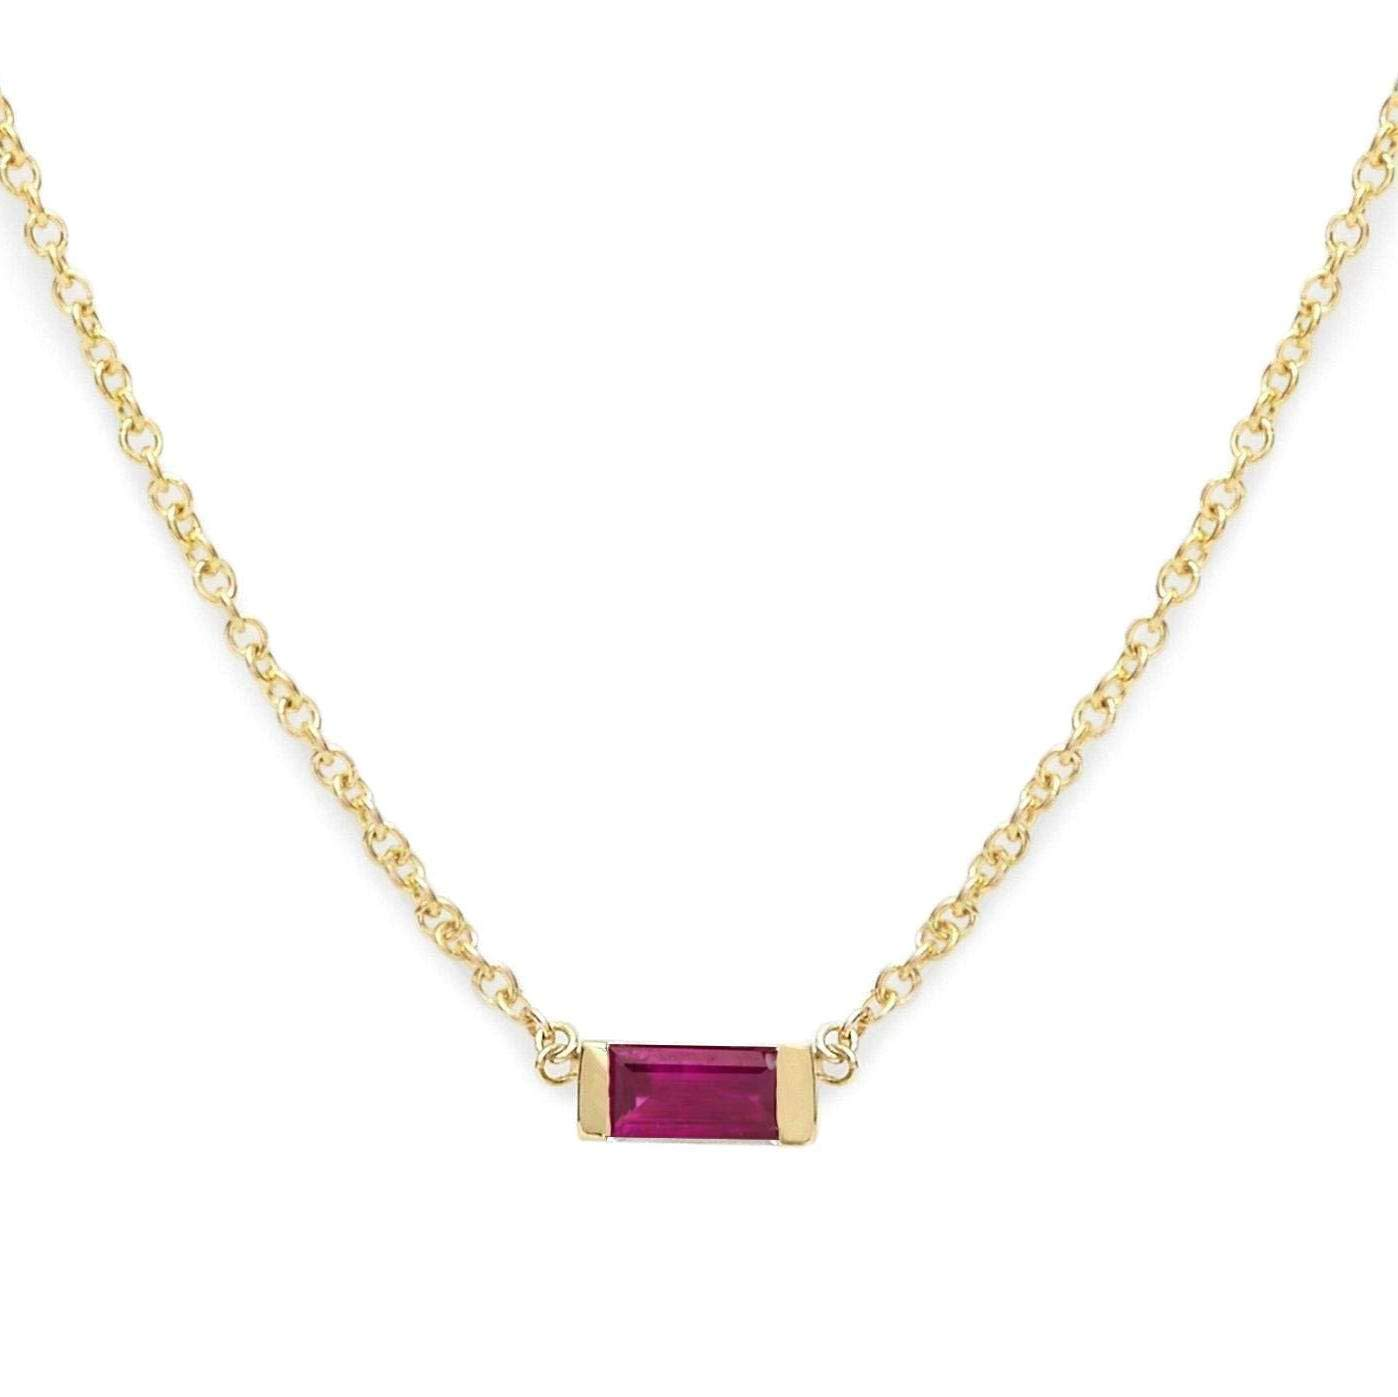 Tiny Garnet Necklace Solitaire 14//20 Gold-filled 17 Inch Length January Birthstone